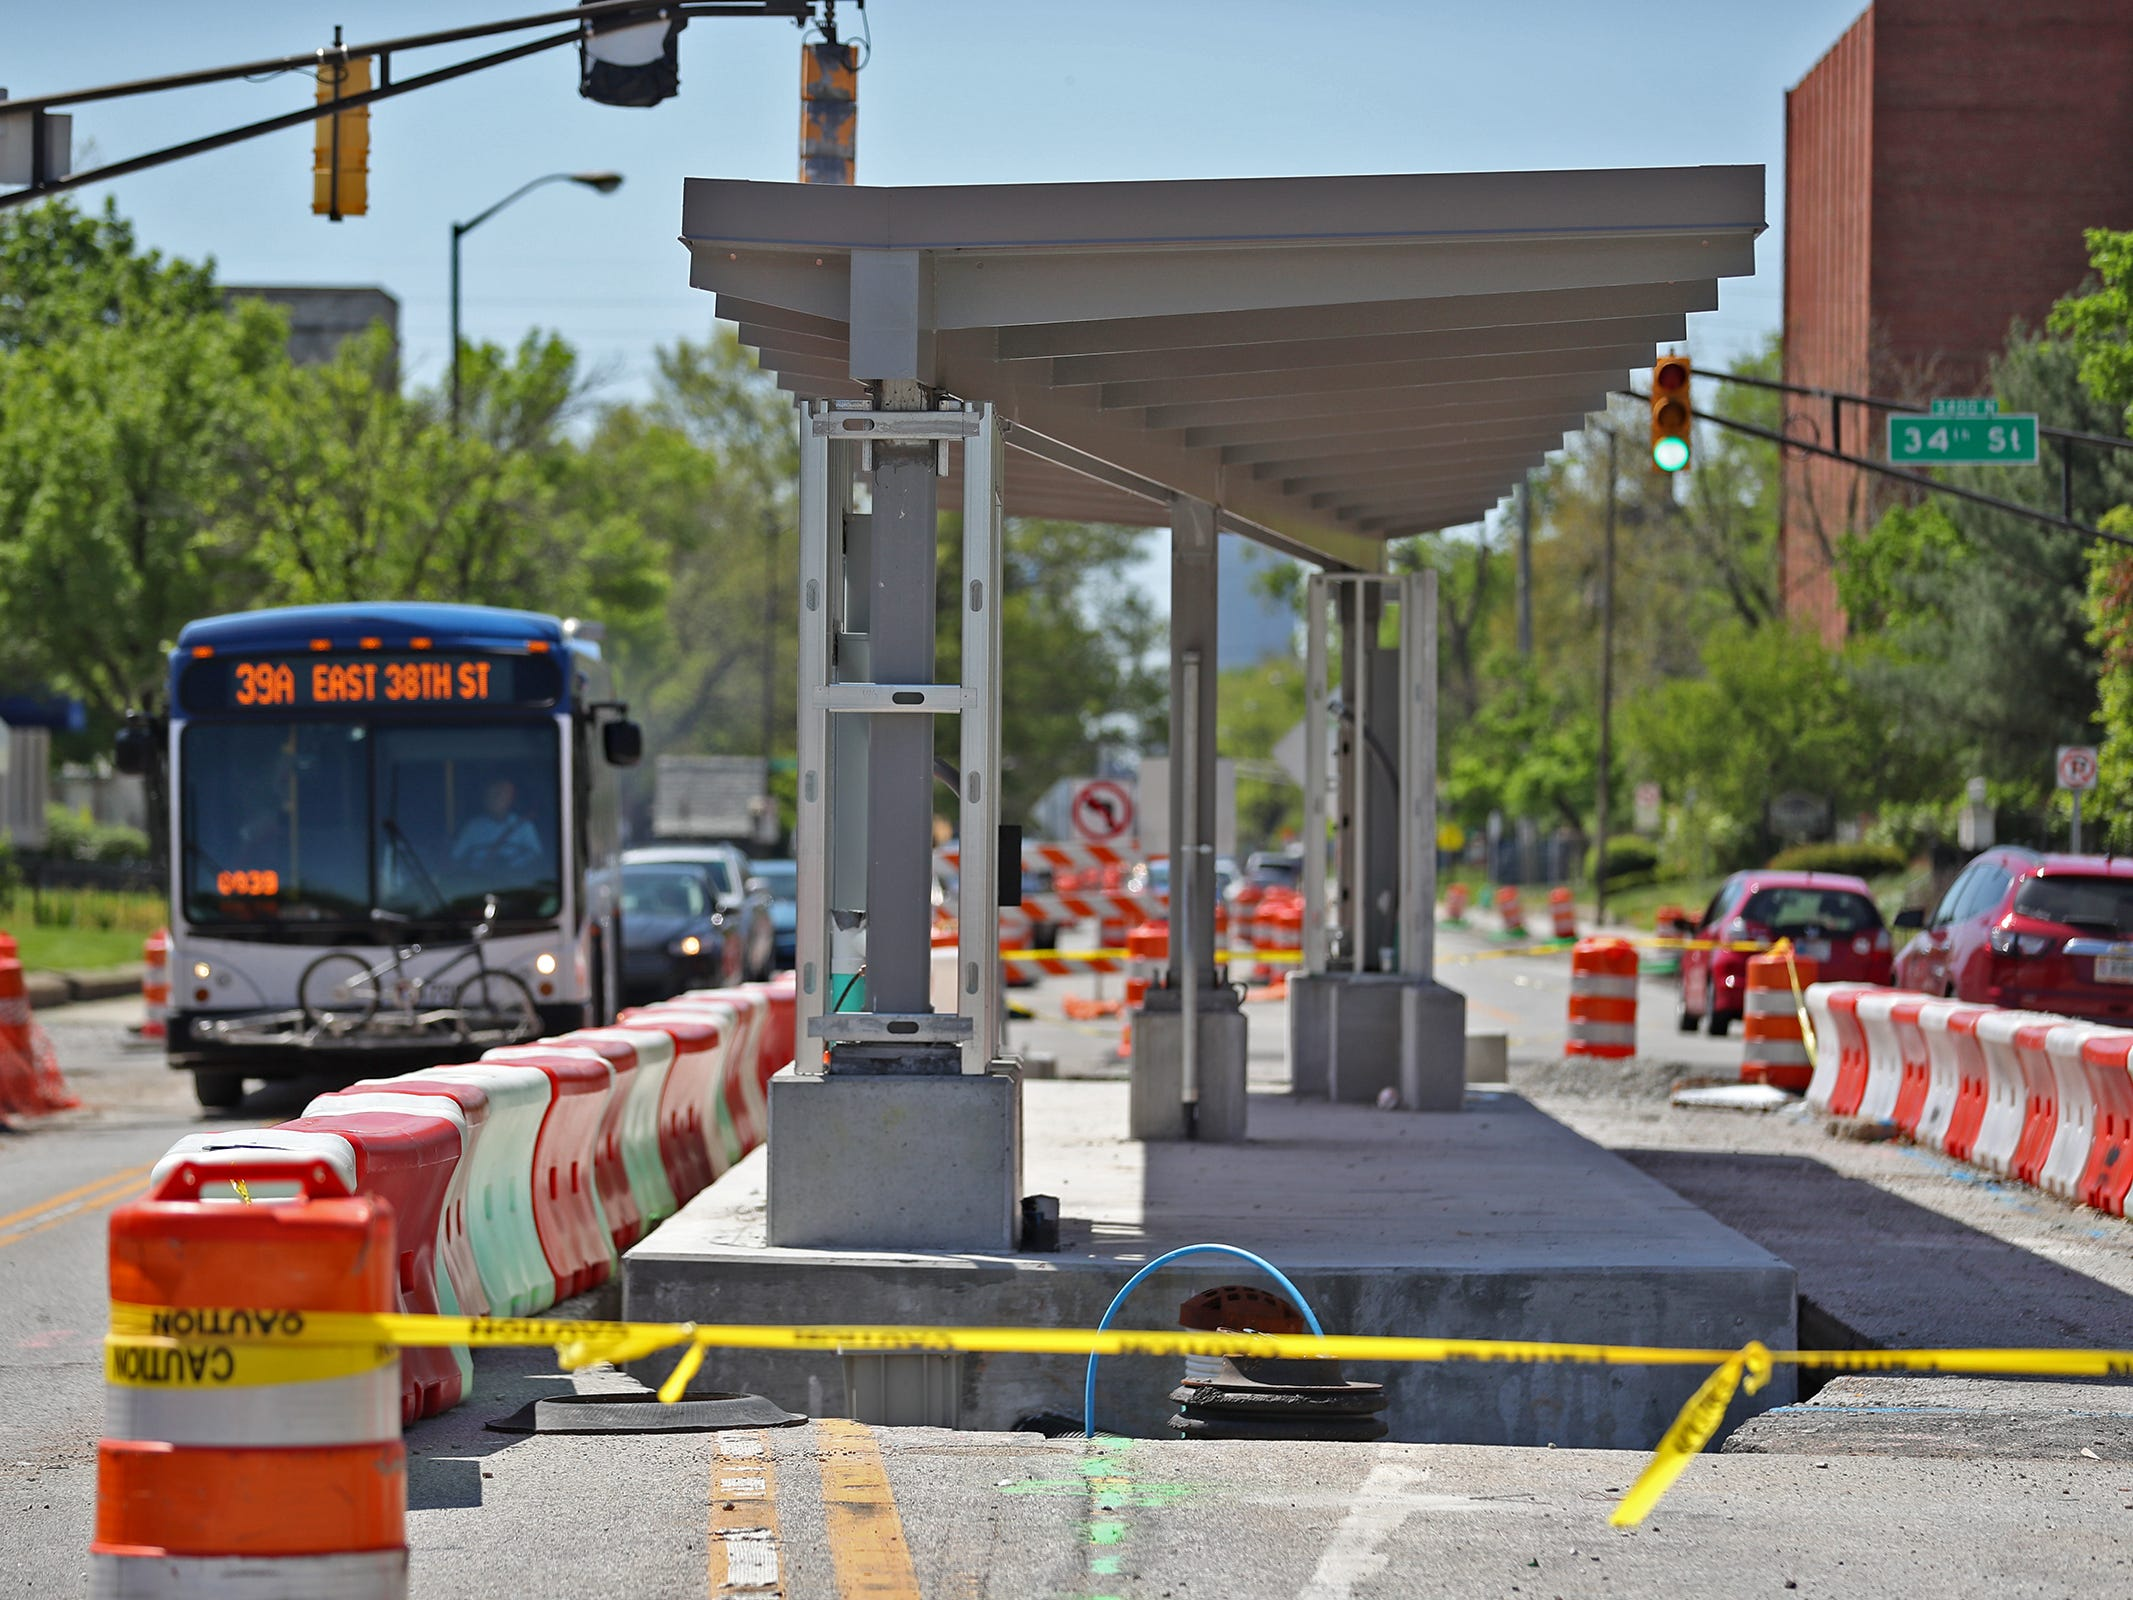 A bus heads north in the 3400 block of Meridian St. by a Red Line station construction site, Sunday, May 5, 2019.  The City has updated the timeline when the Red Line Bus Rapid Transit system should open, which is later in 2019 summer.